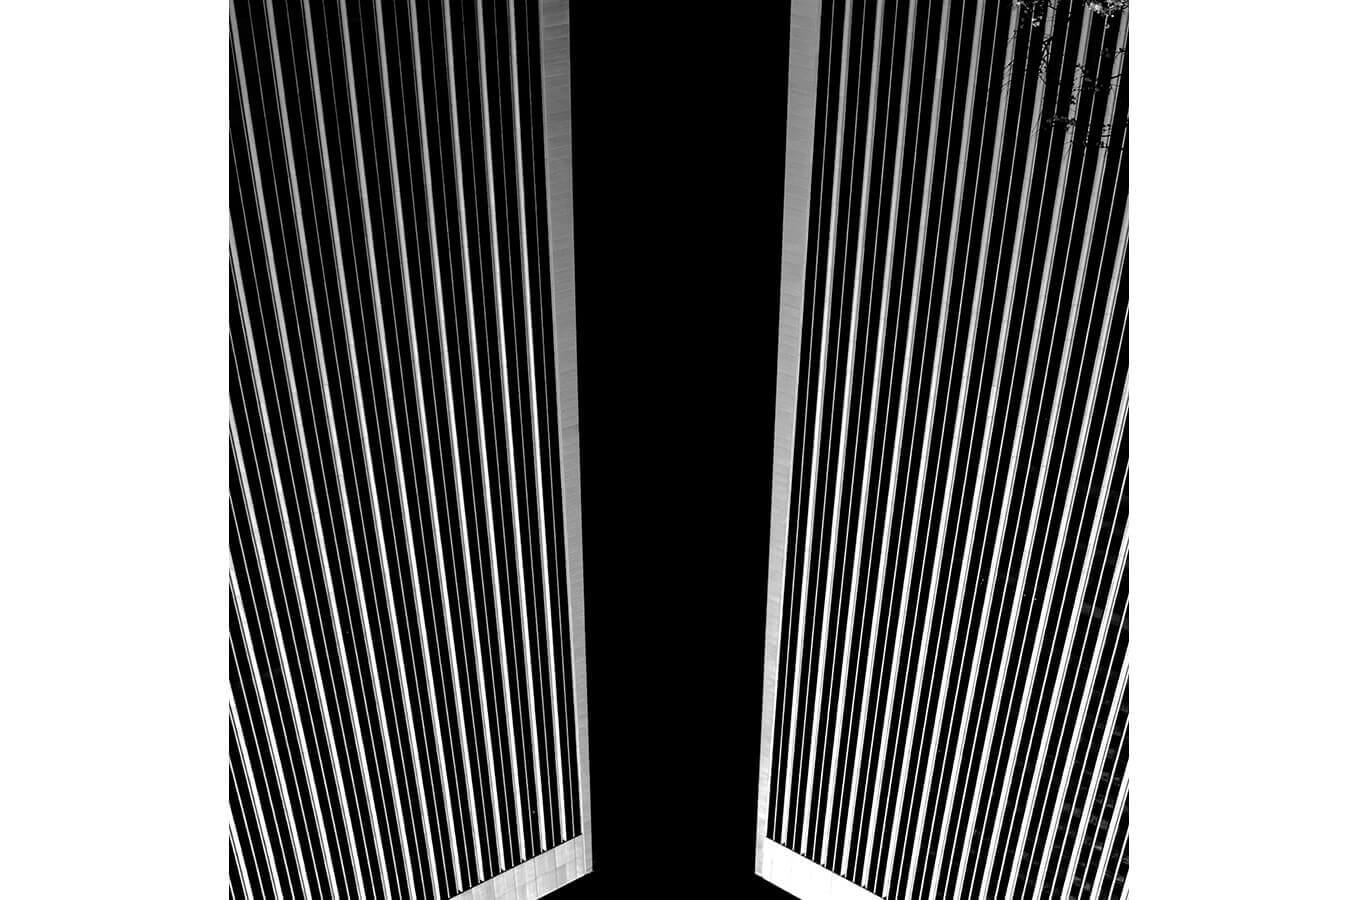 Abstract Black and White Architecture Photograph by Carrie Morgan